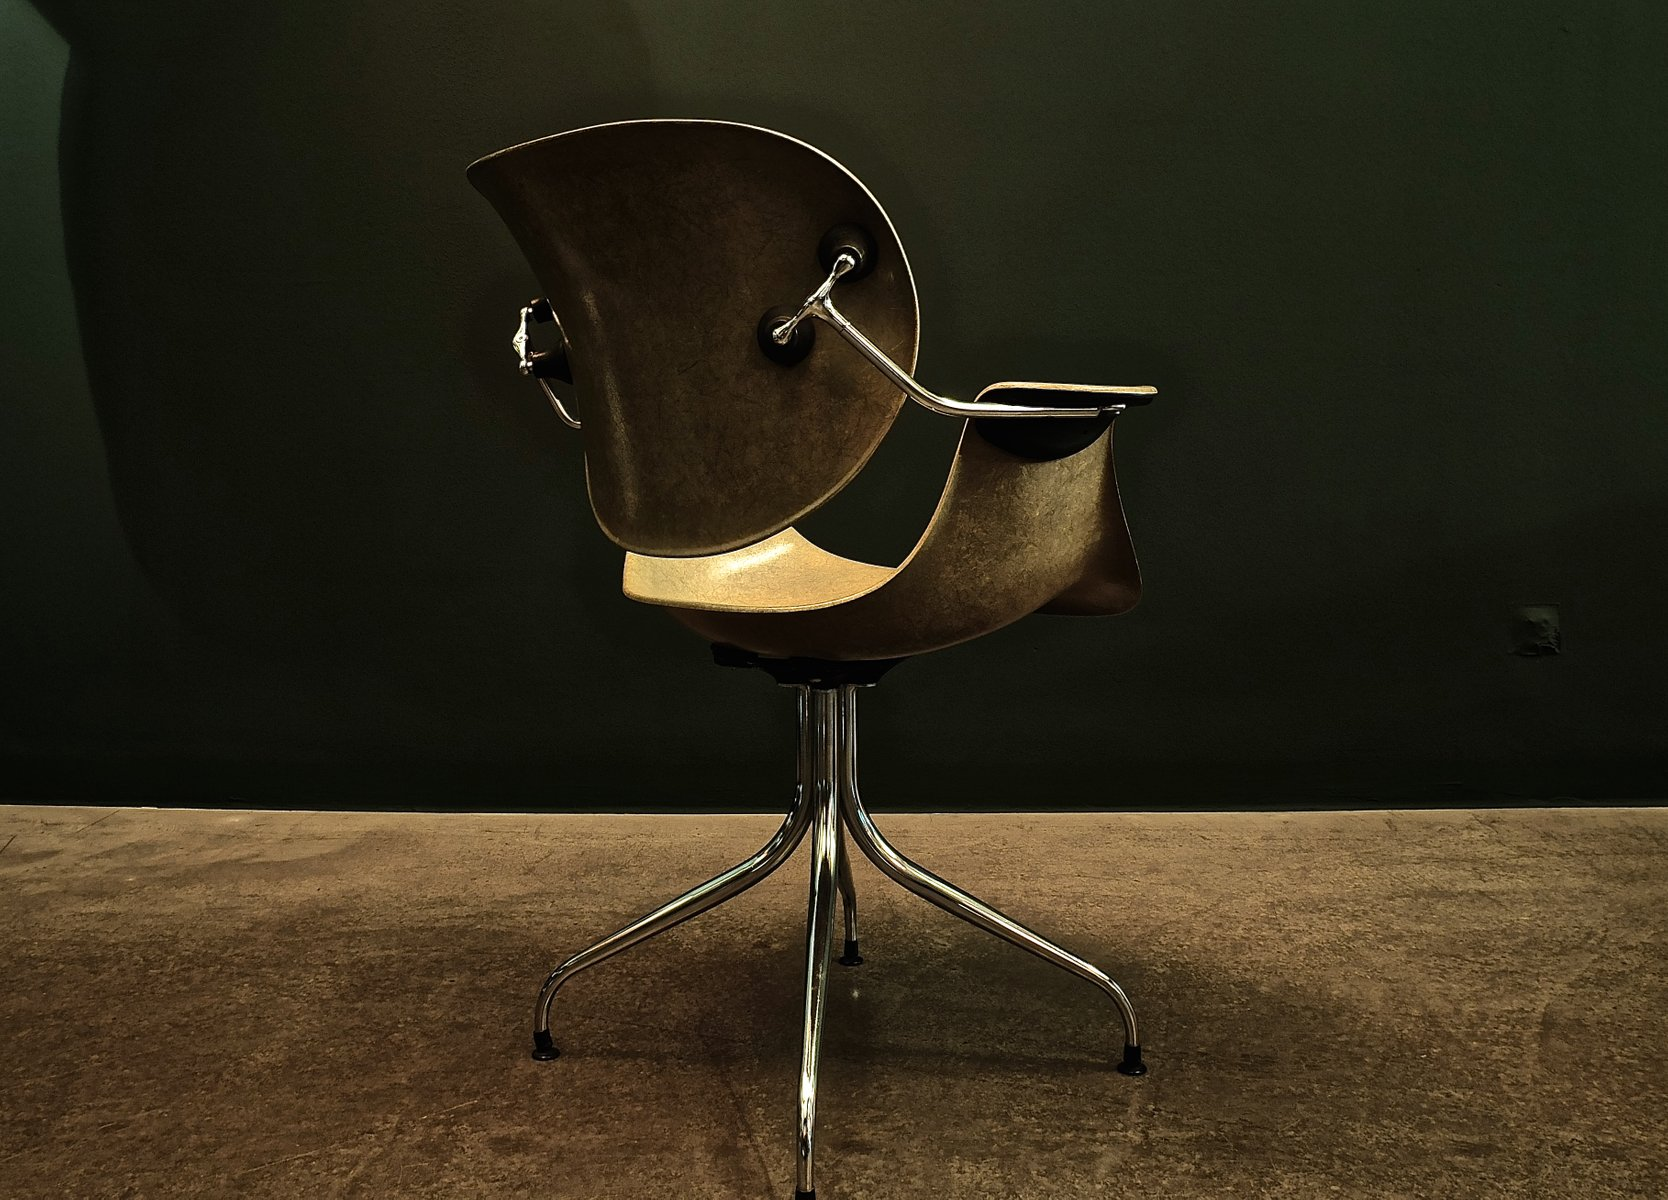 Swag Leg Chair DAA by George Nelson for Herman Miller 1959 for